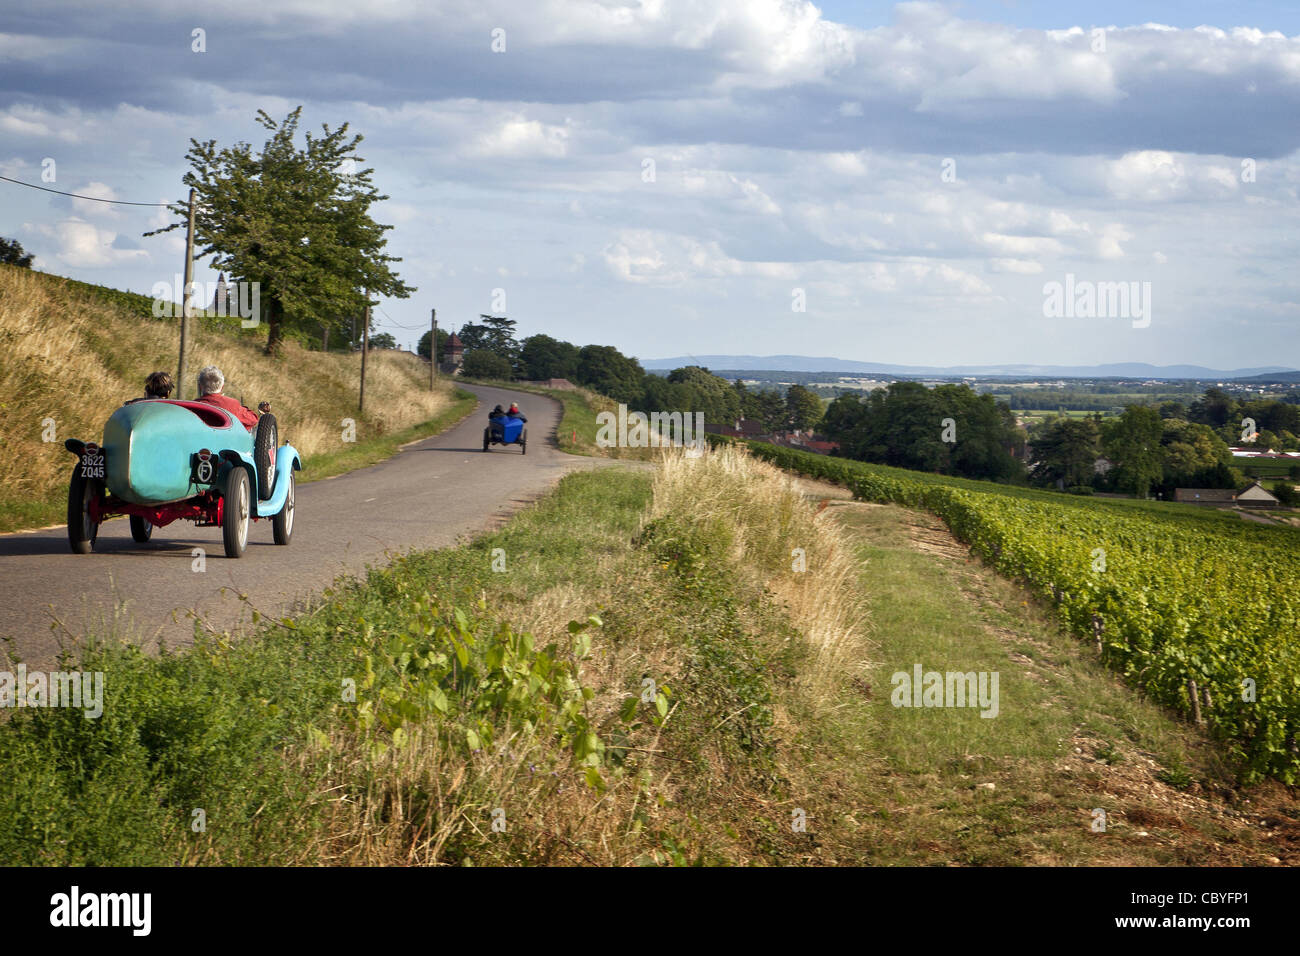 old collectors' cars on route d23 in front of the vineyards of stock